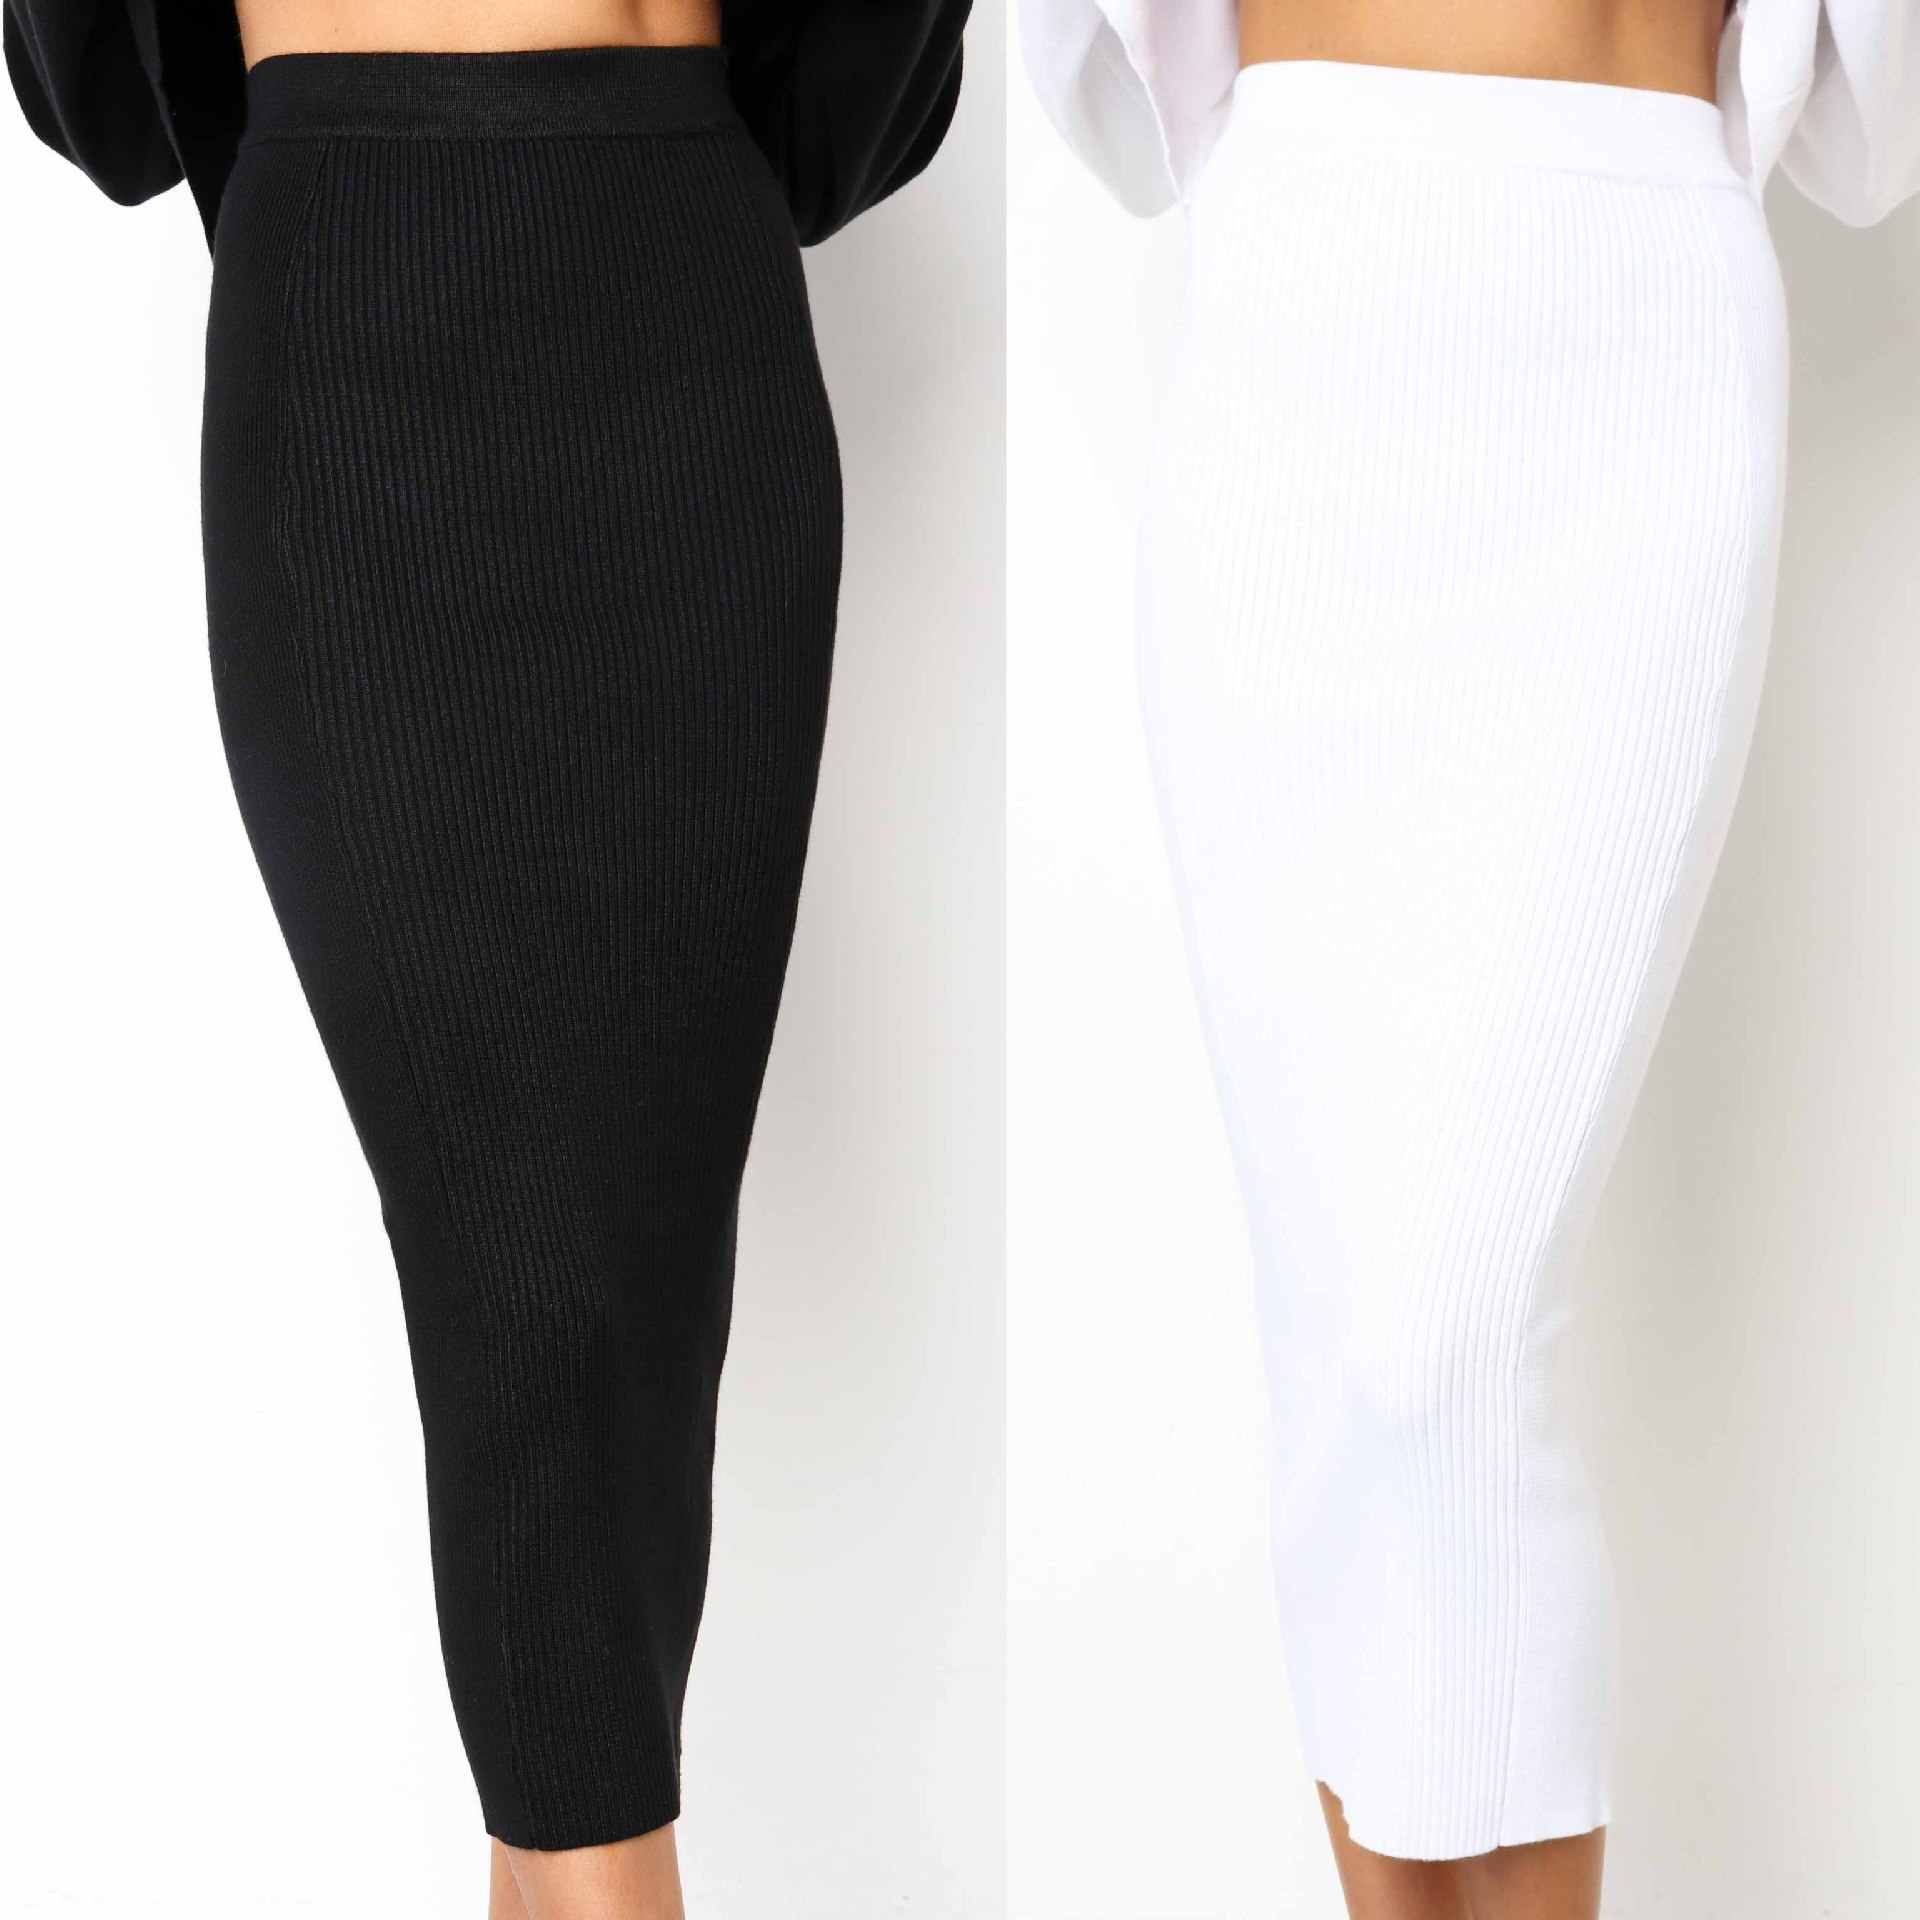 LOSSKY Knitted 2018 Autumn Bodycon Long Skirt Sexy Black White High Waist Tight Women Maxi Elegant Party Club Wear Pencil Skirts